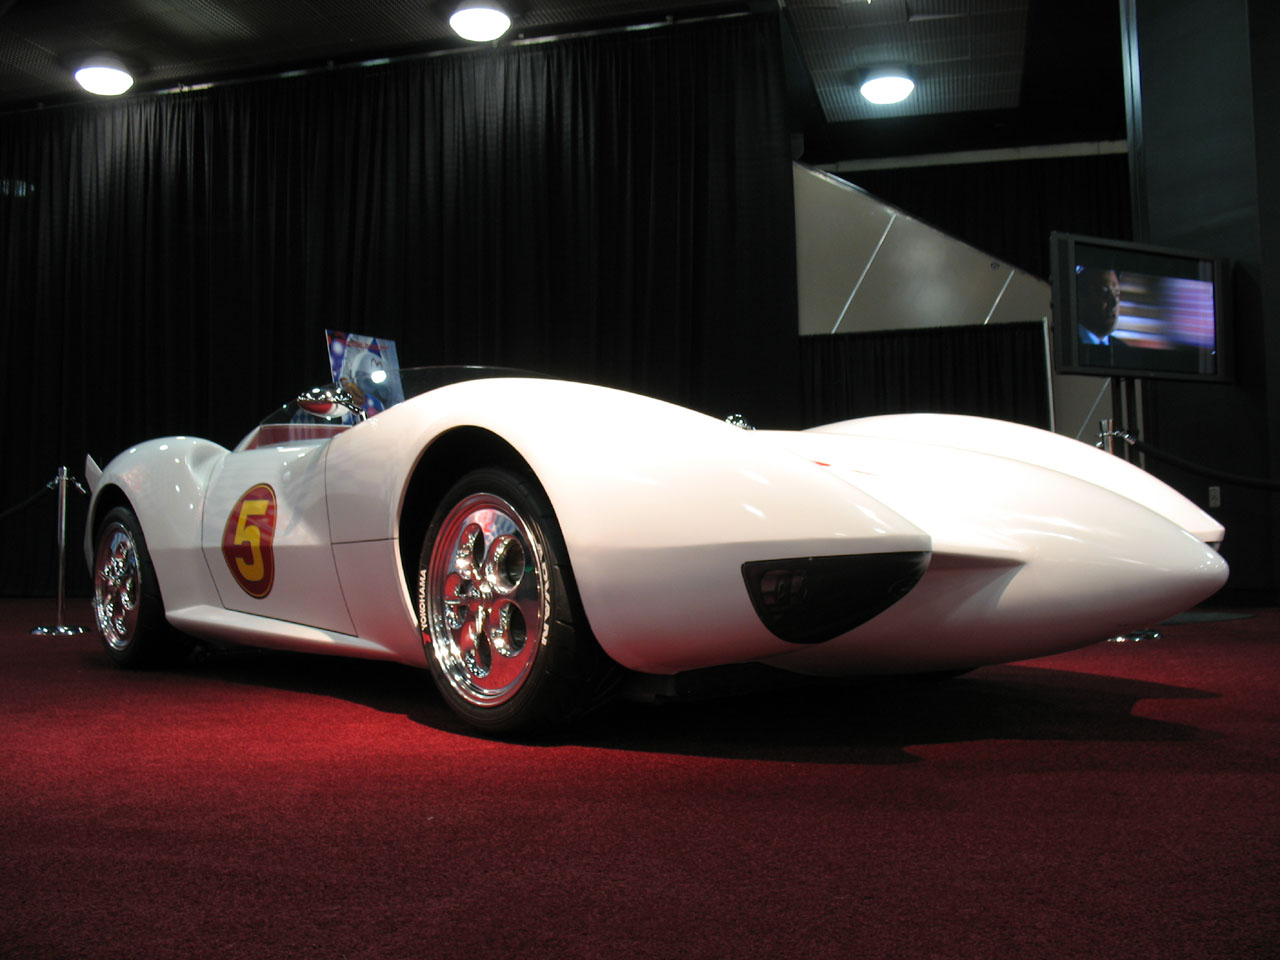 Honda Certified Pre-Owned >> 2008 Detroit: Speed Racer's Mach 5 Photo Gallery - Autoblog